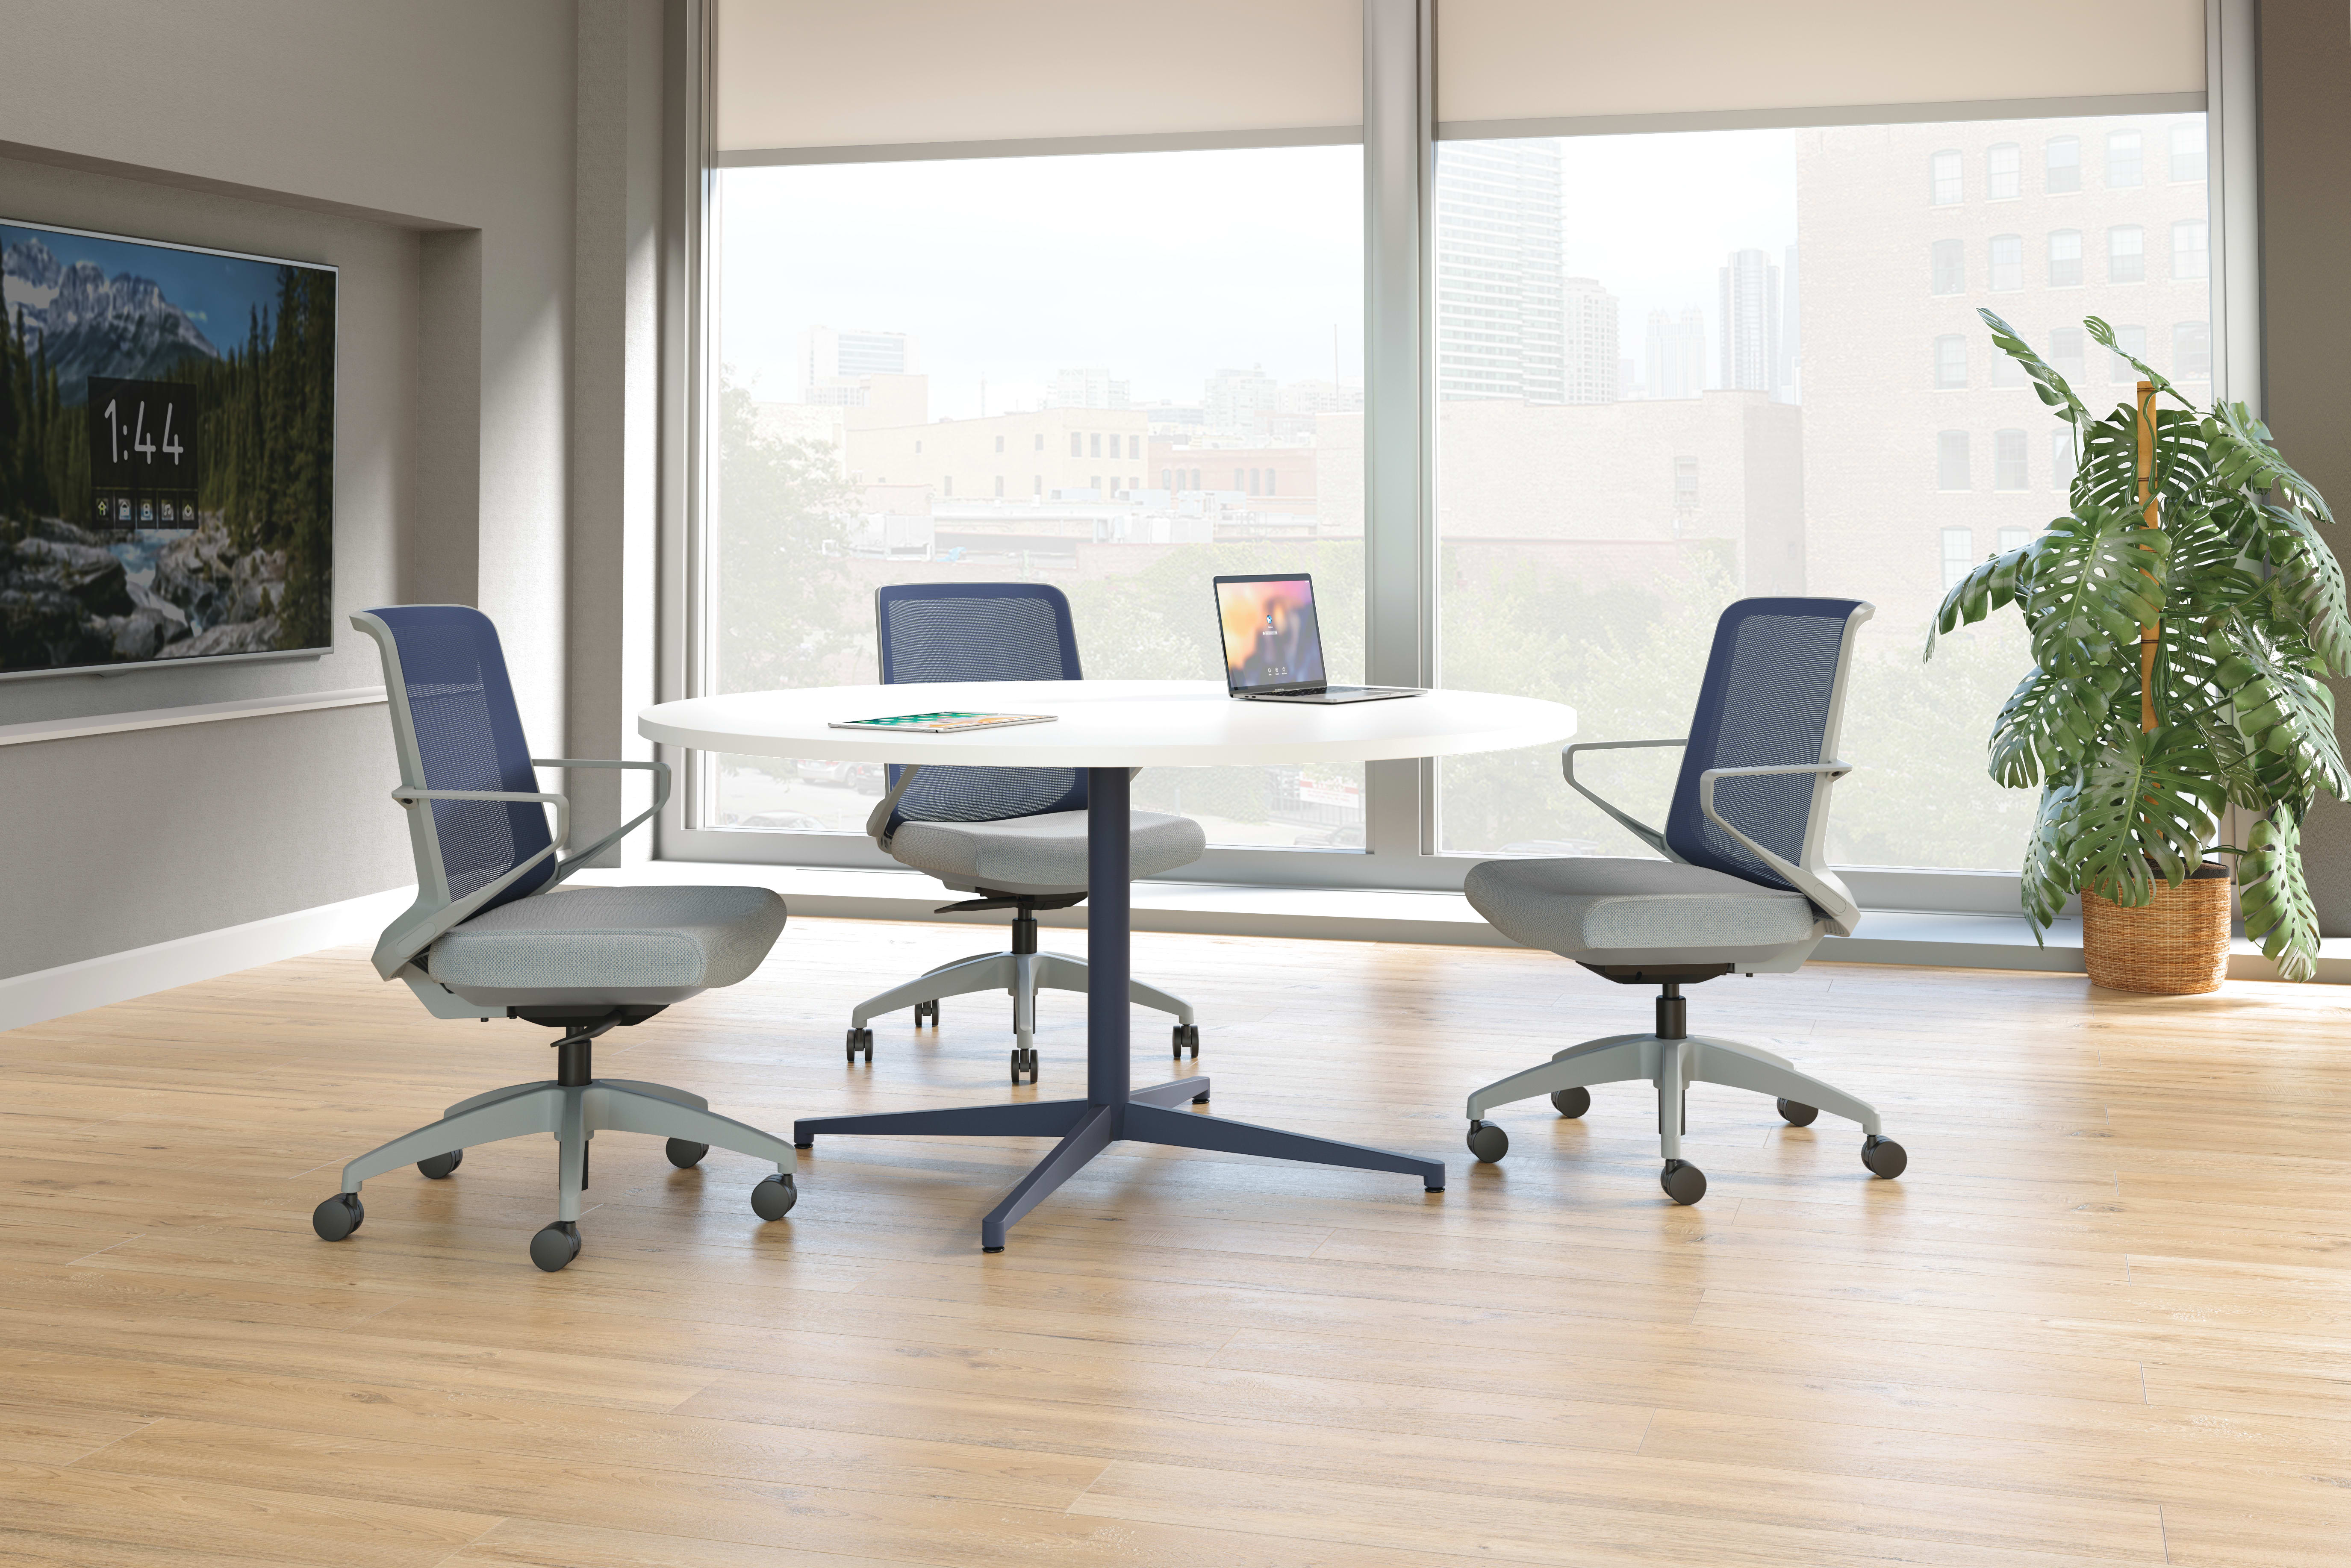 Cliq chairs with Preside round conference table.